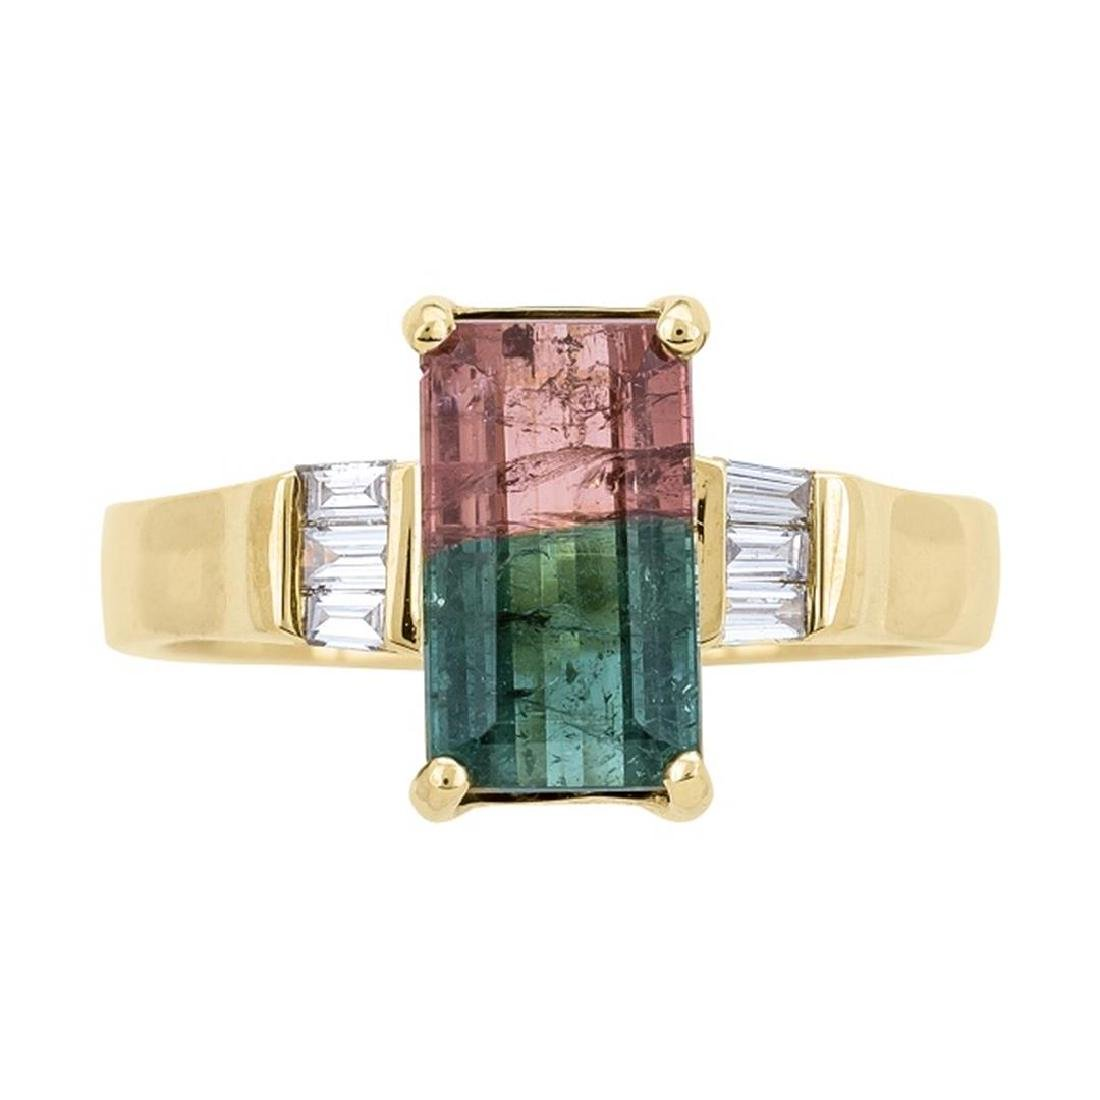 2.27 ctw Bi-Color Tourmaline and Diamond Ring - 14KT